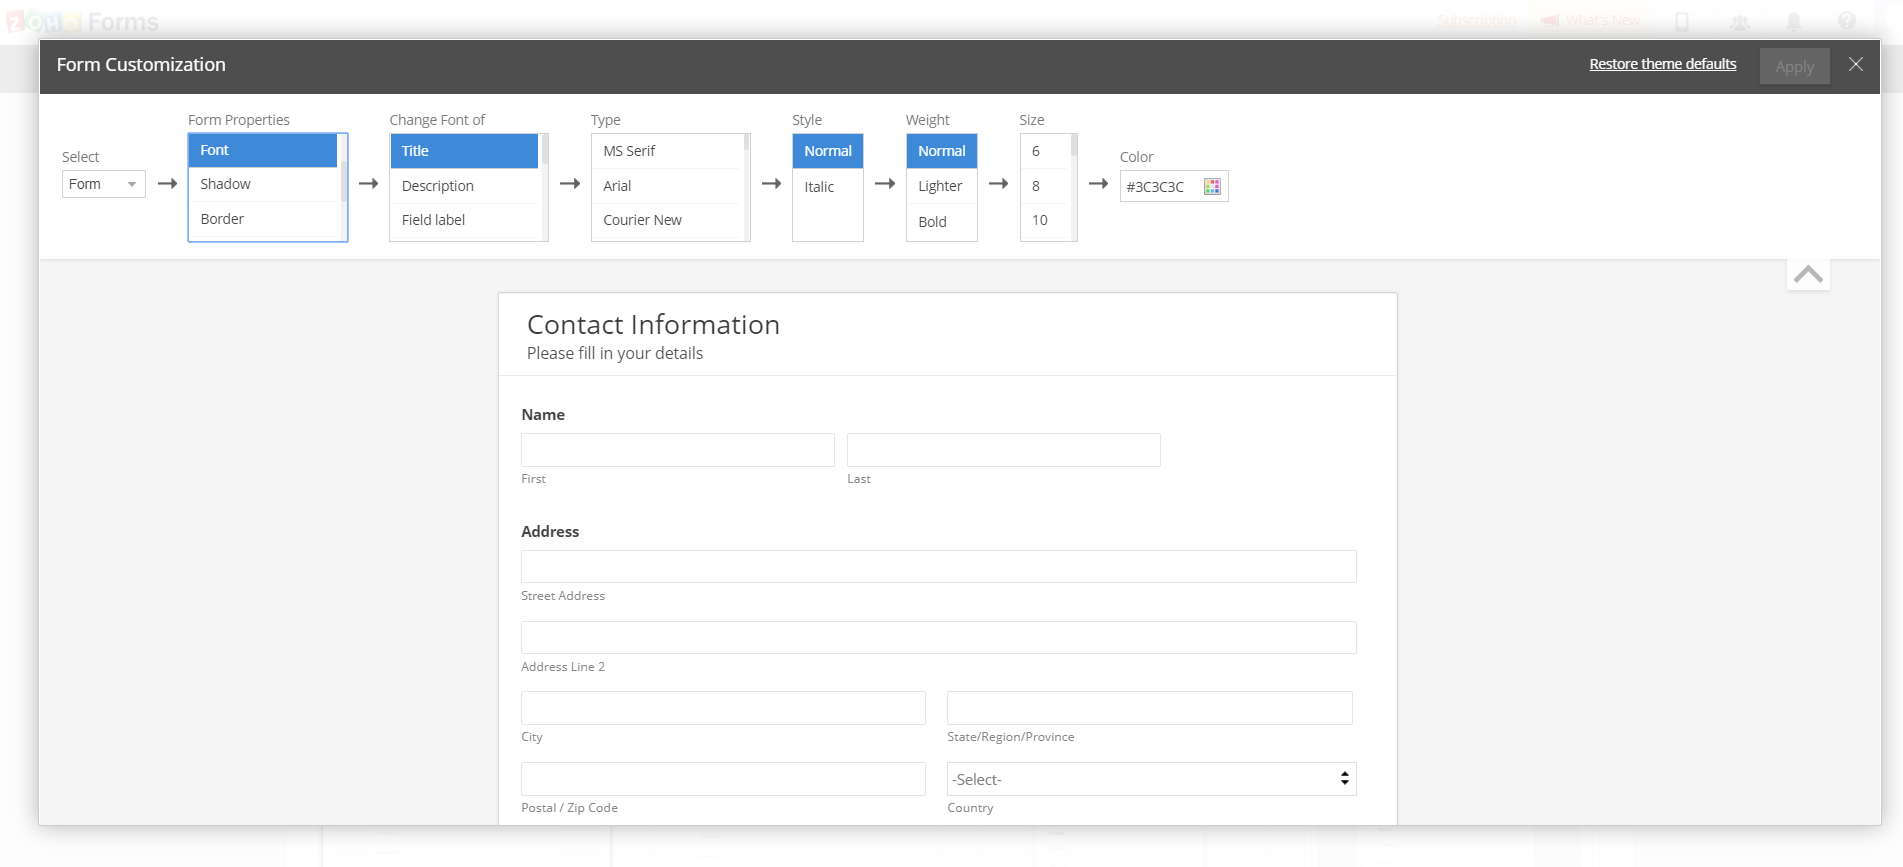 Theme Customization in Zoho Forms